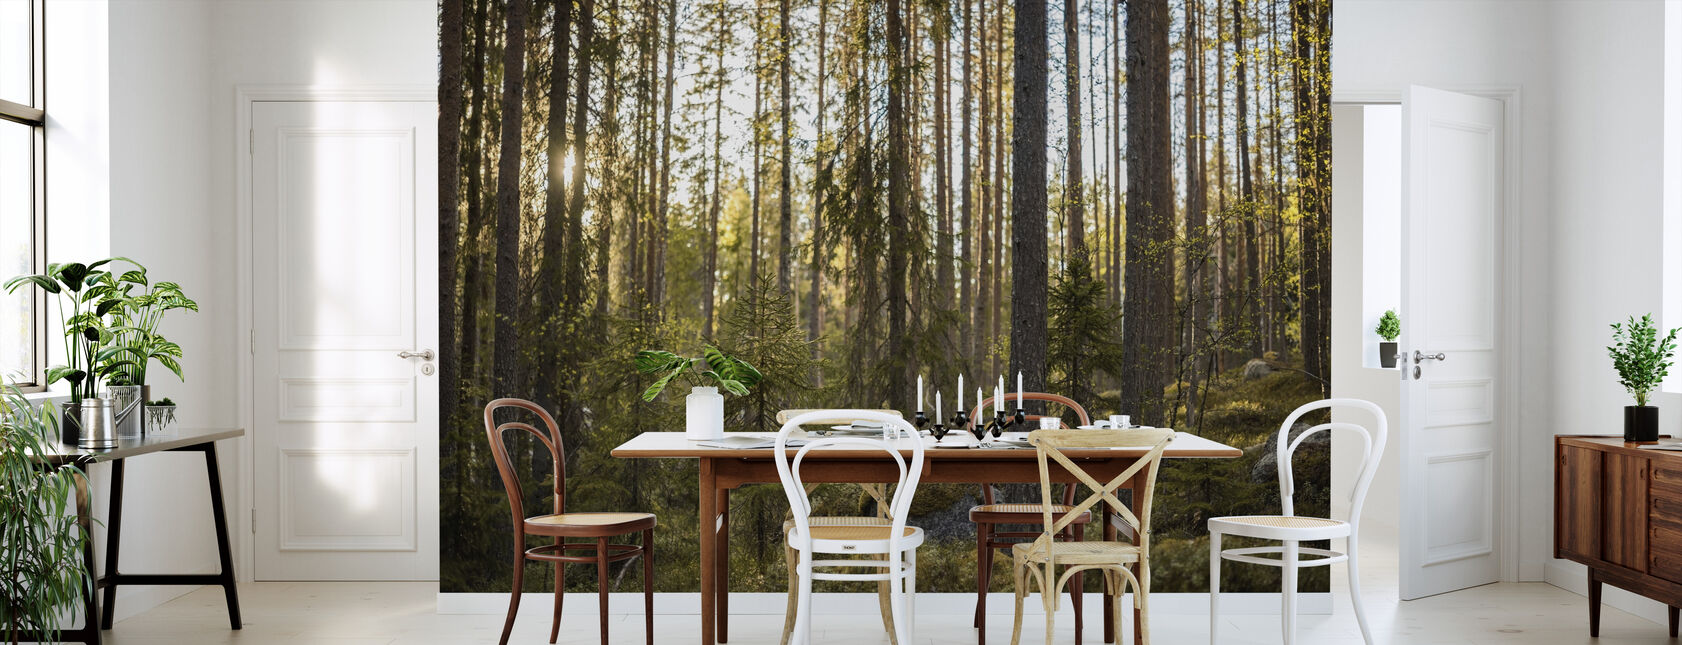 The Fairytale Forest - Wallpaper - Kitchen